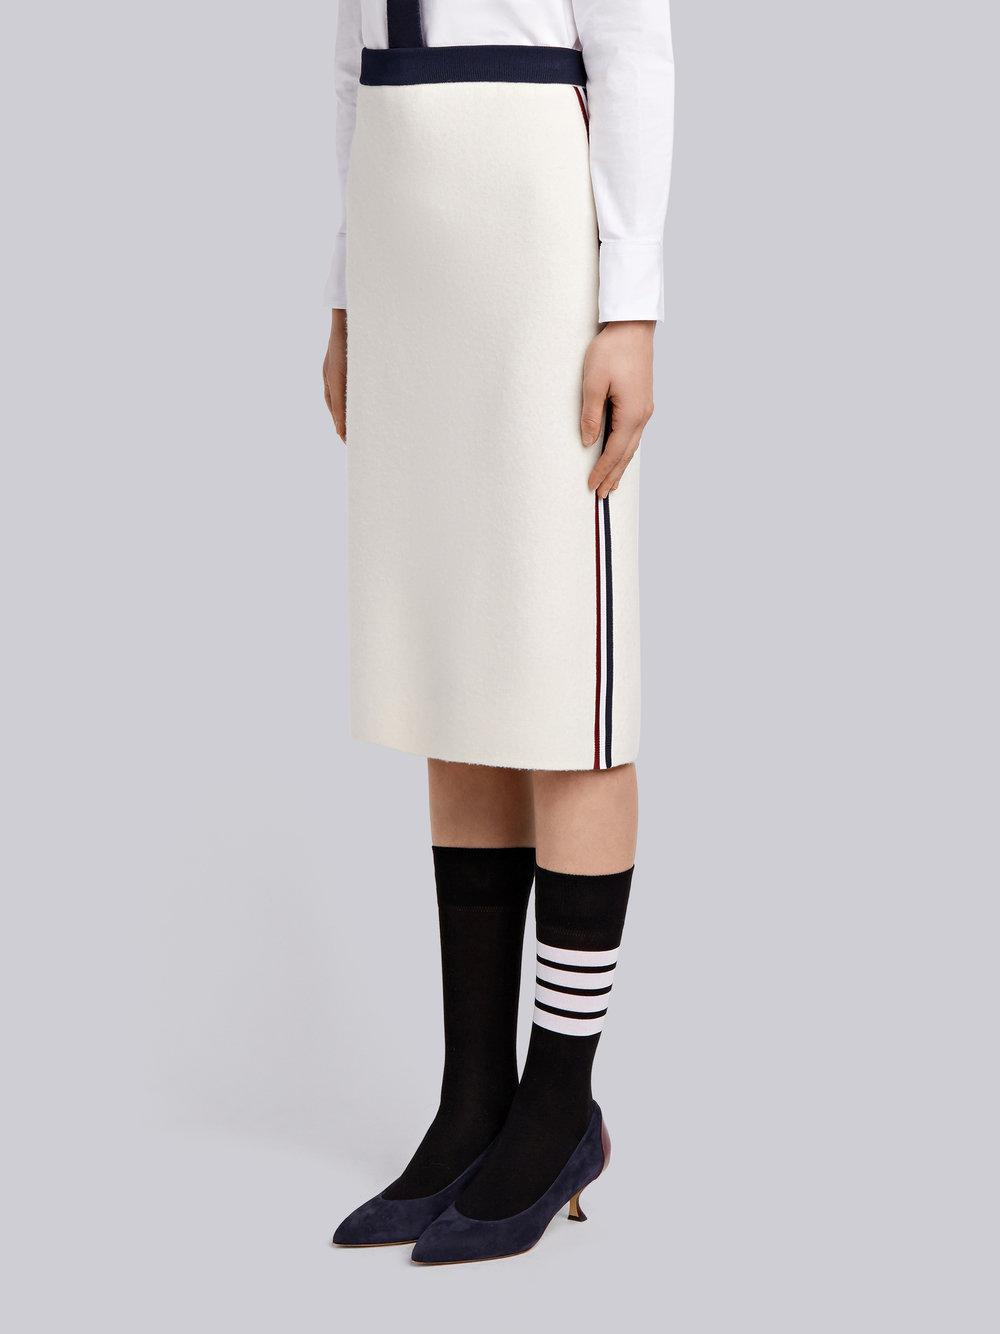 0fb5cd075a44ce Lyst - Thom Browne Vertical Stripe Wool Pencil Skirt in White